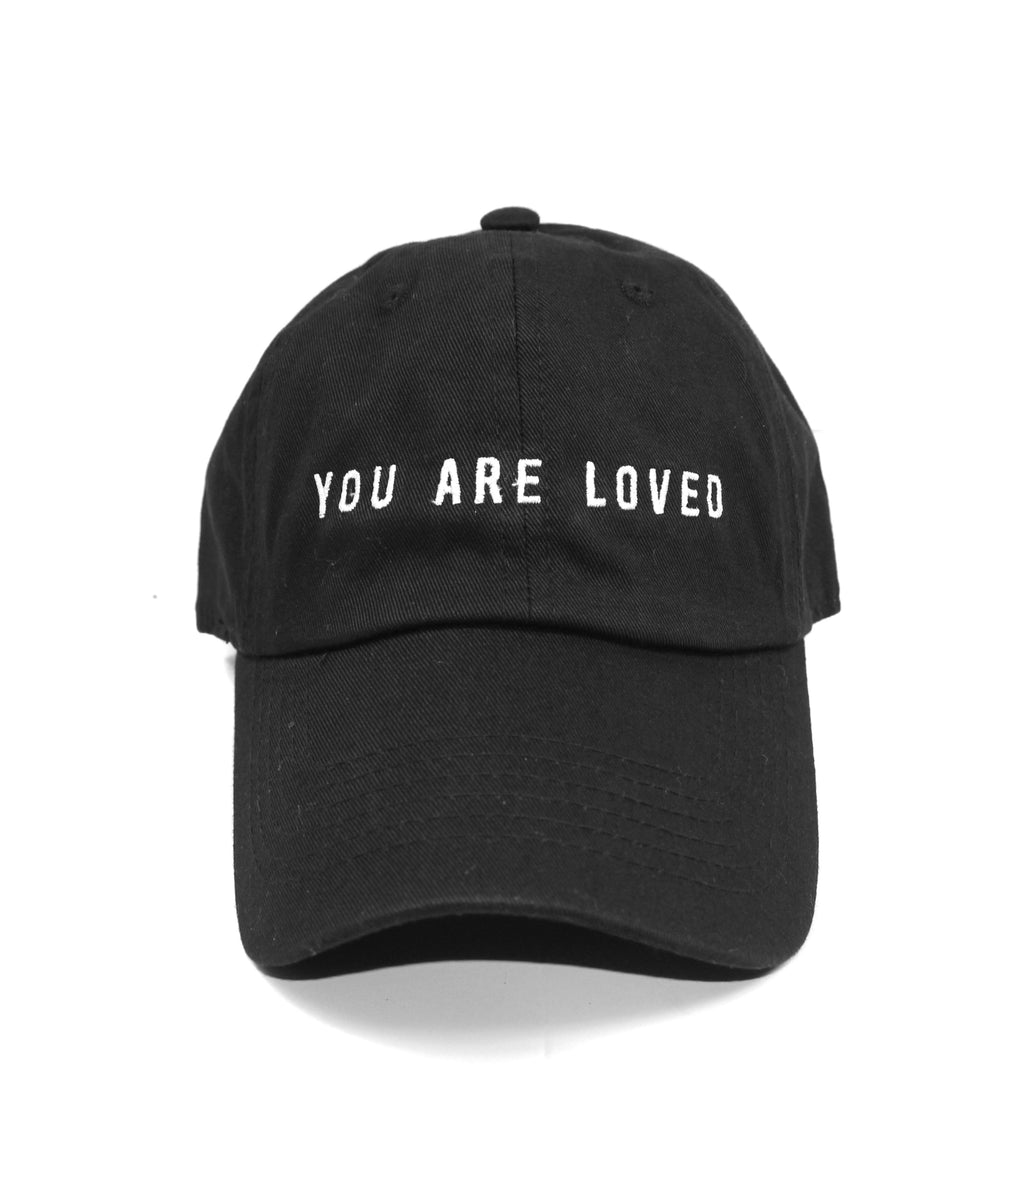 YOU ARE LOVED BLACK DAD CAP